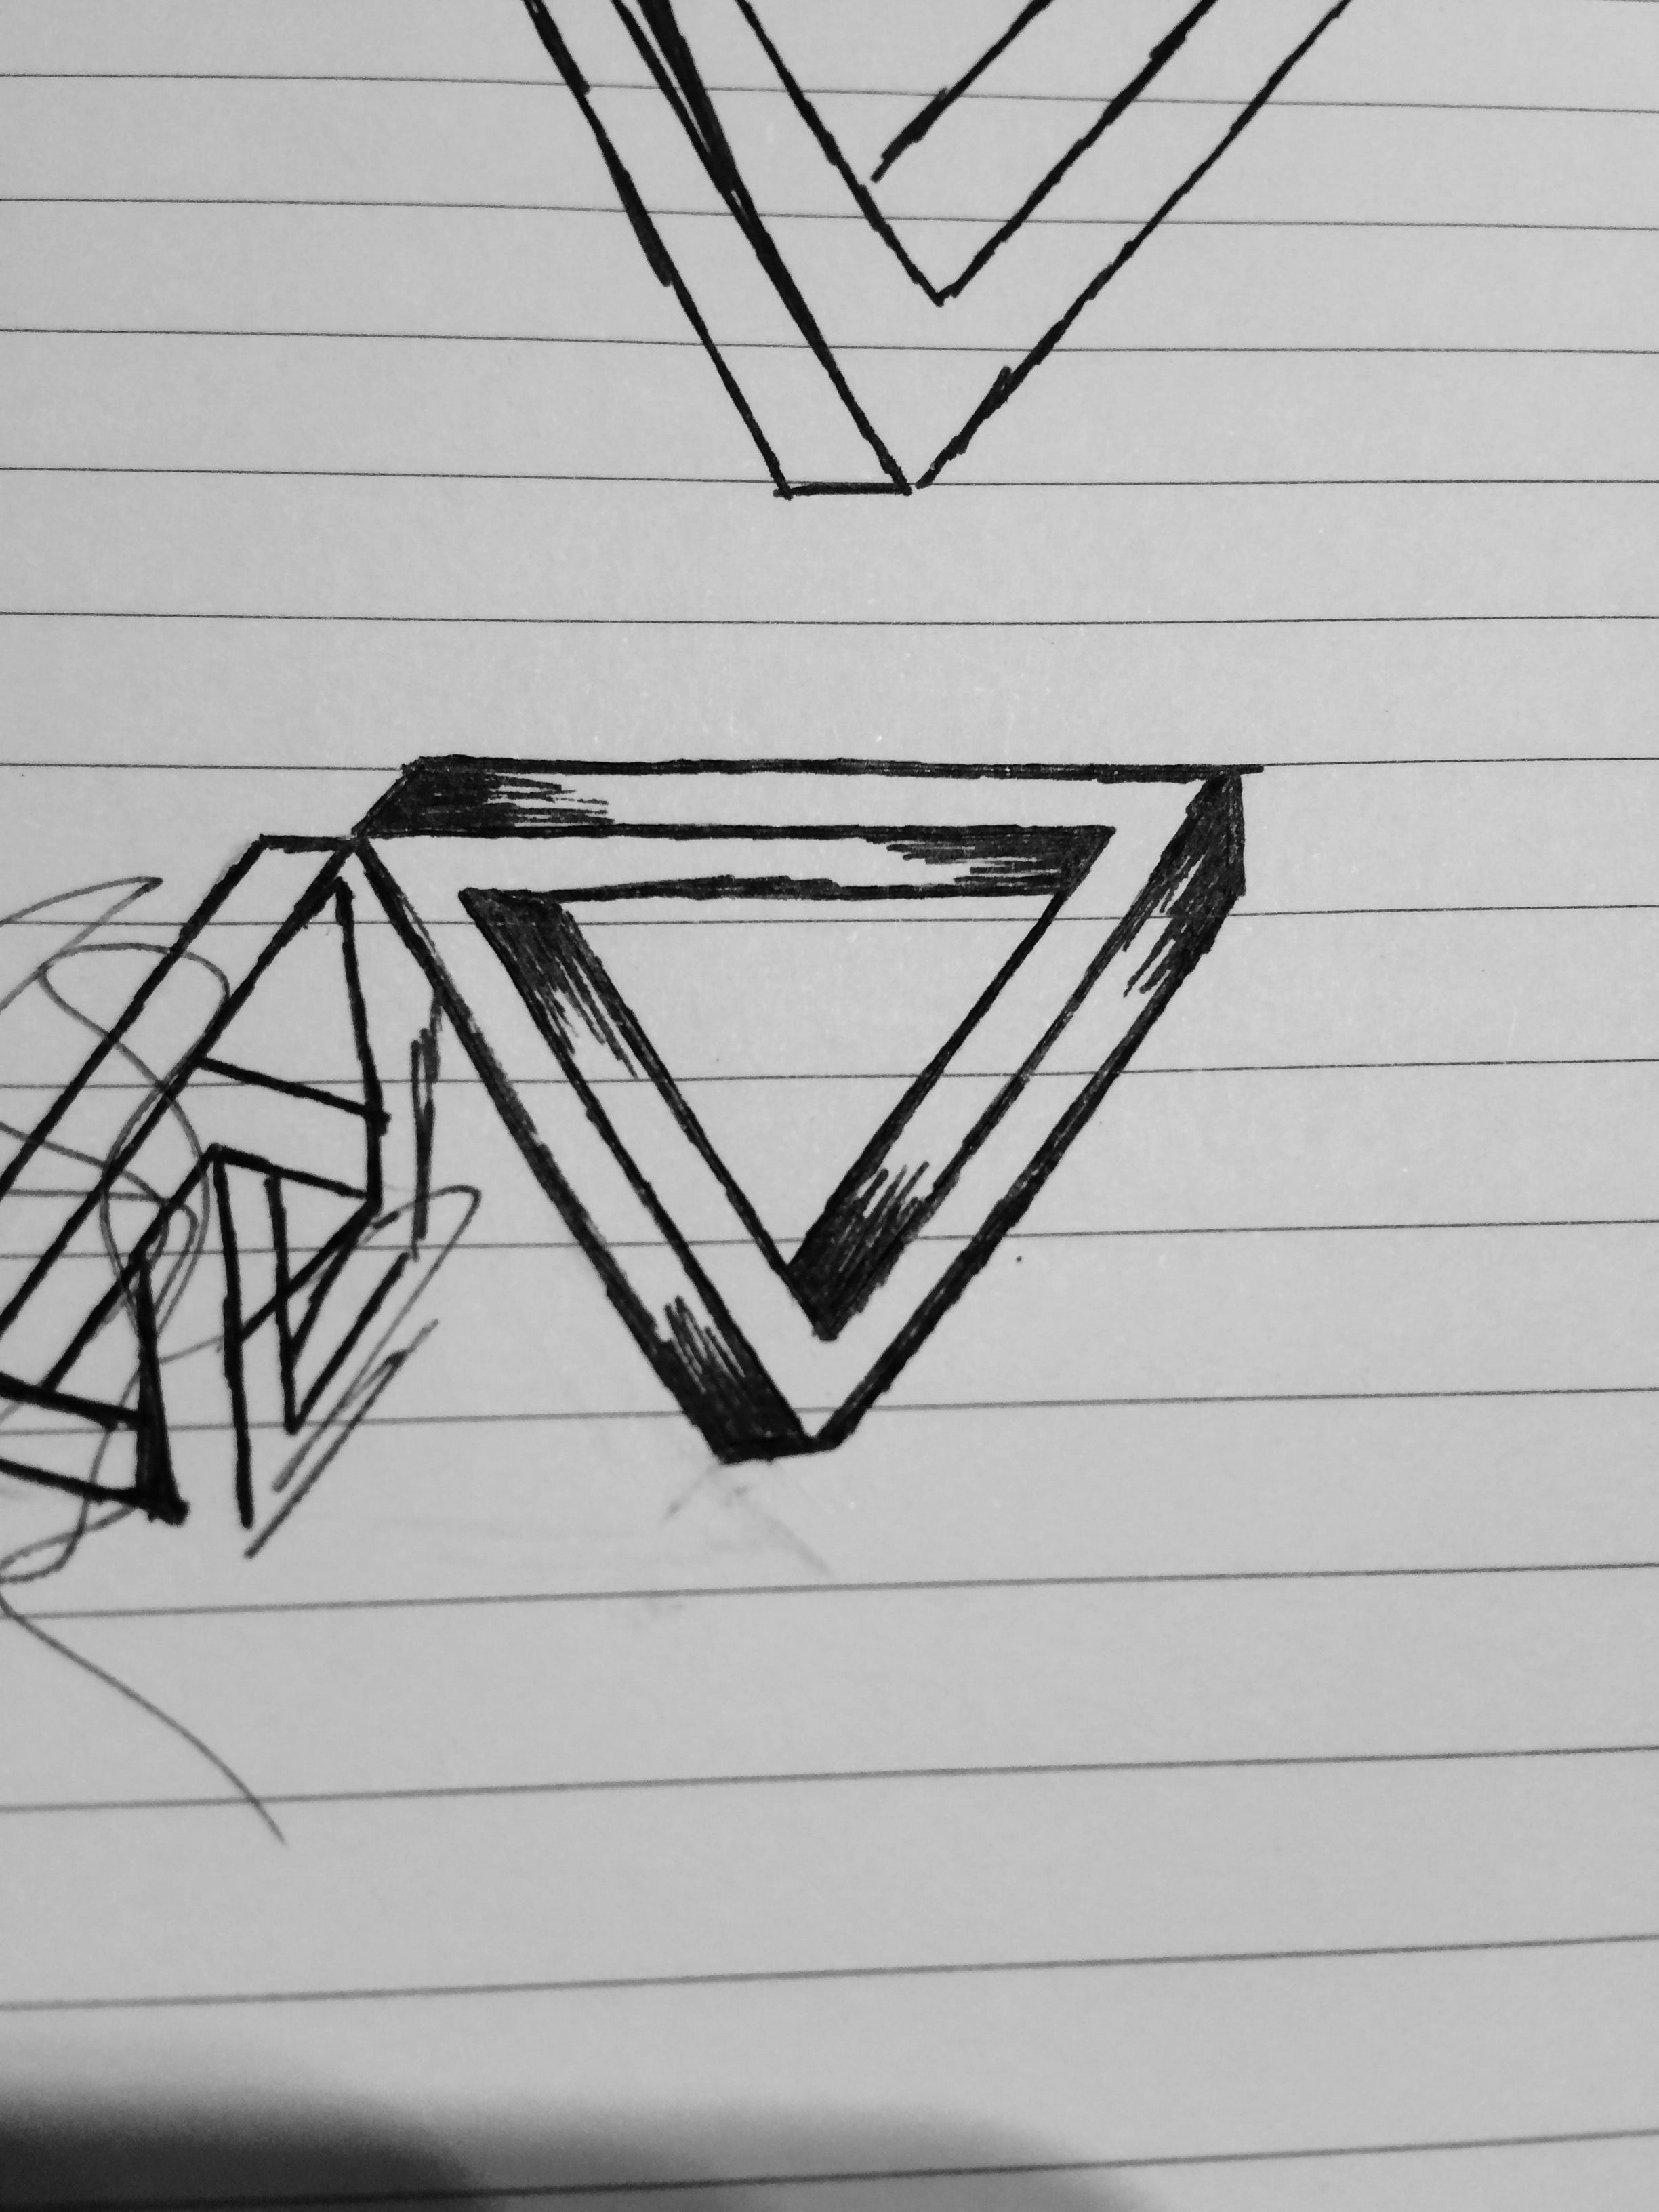 Impossible triangle! Feel free to comment. Art by McKenna B